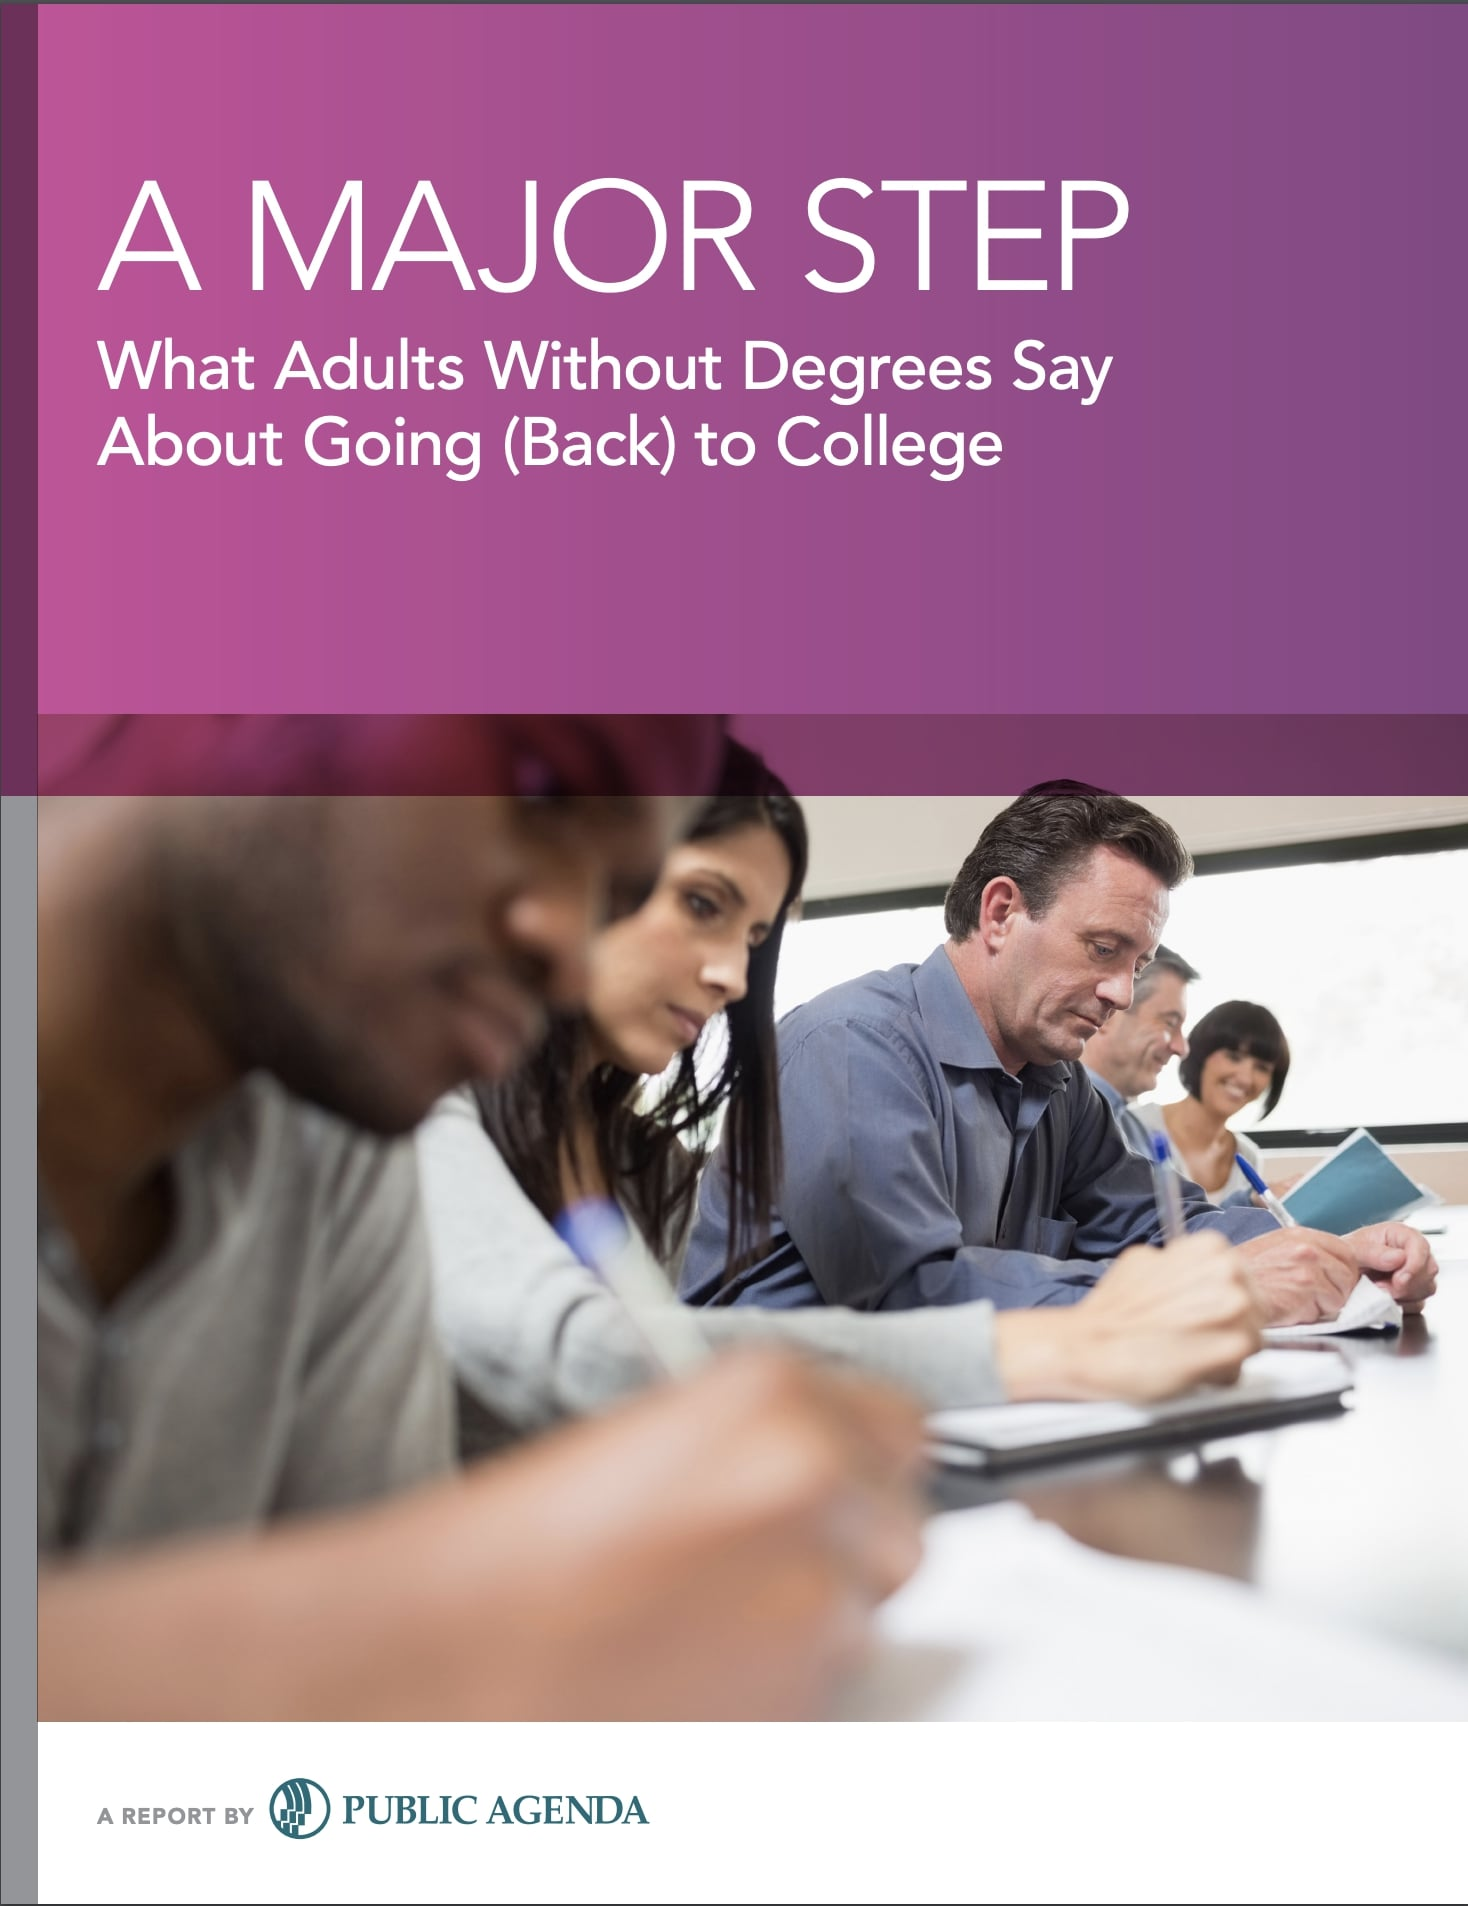 A Major Step Report Cover